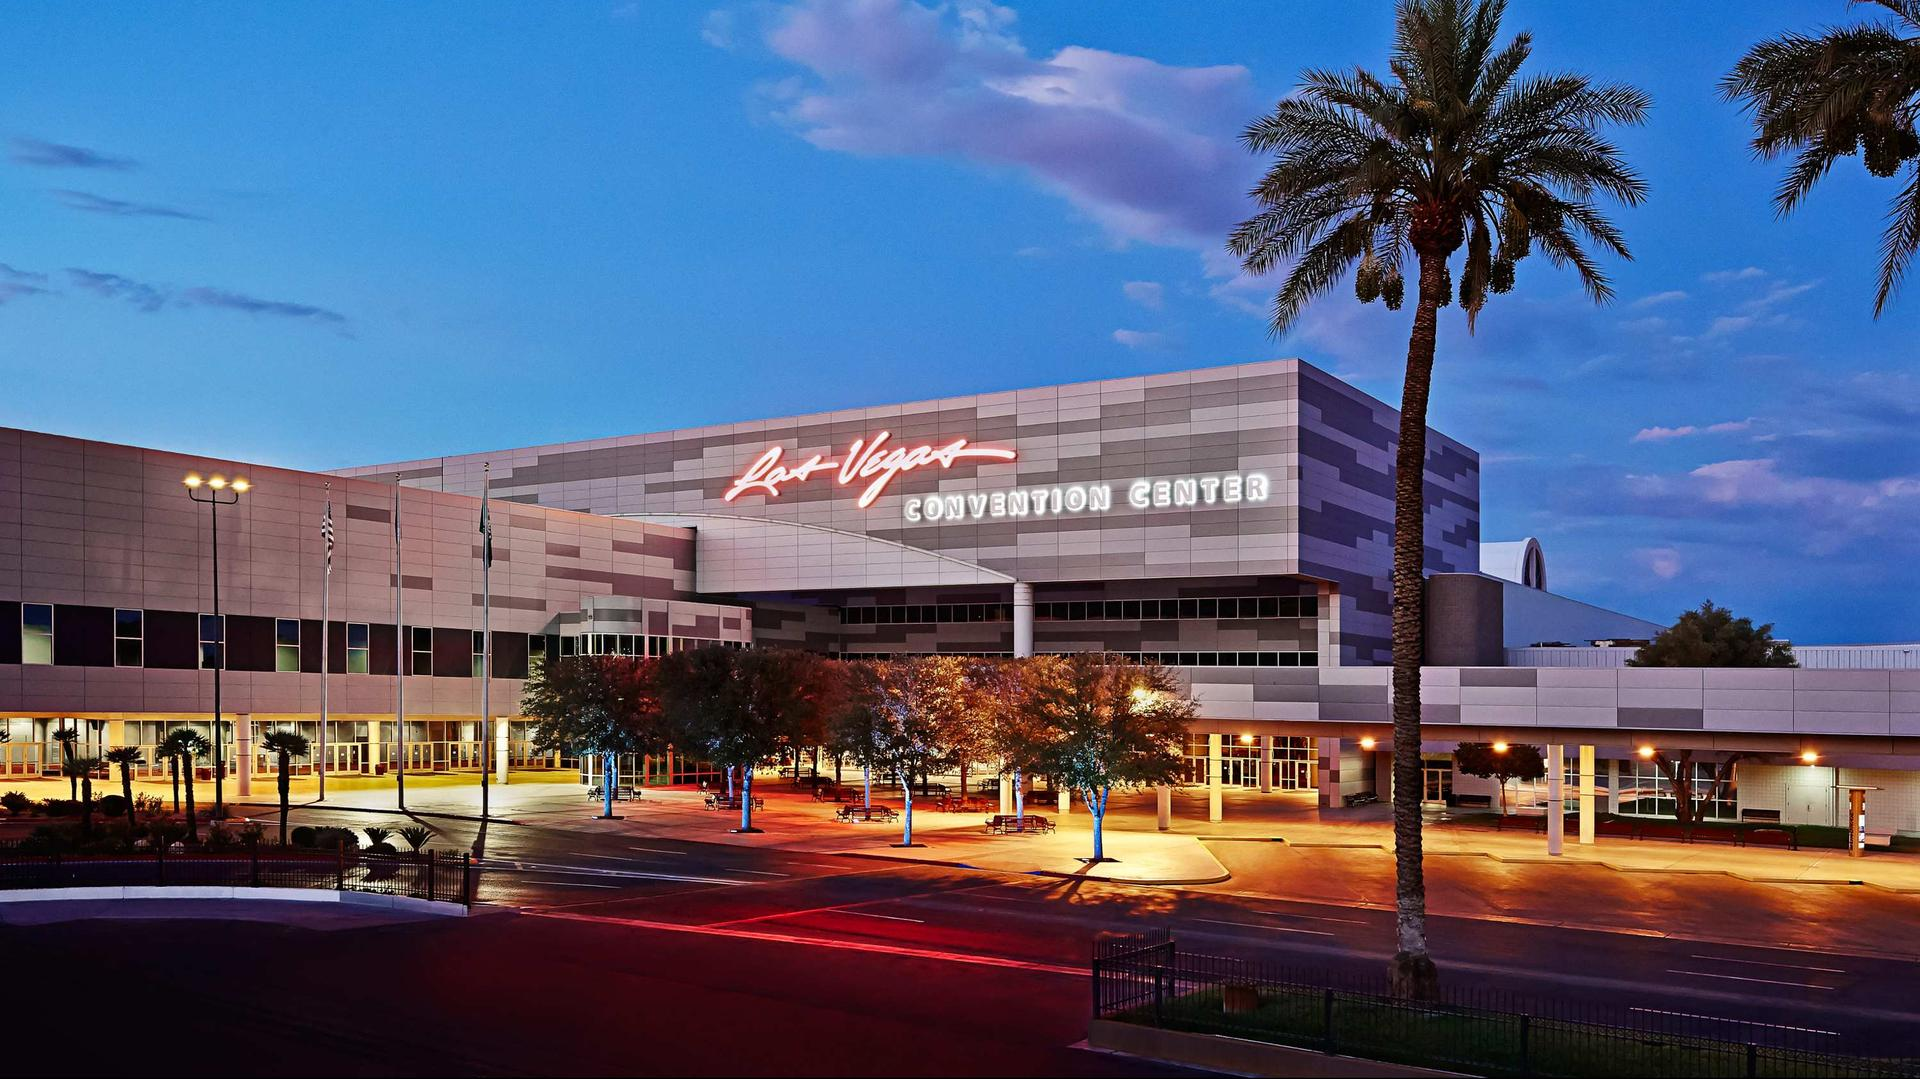 Las Vegas,nevada - Did you hit the jackpot and get Las Vegas as your next incentive trip? Day or night, we can get you all set up, stress free.